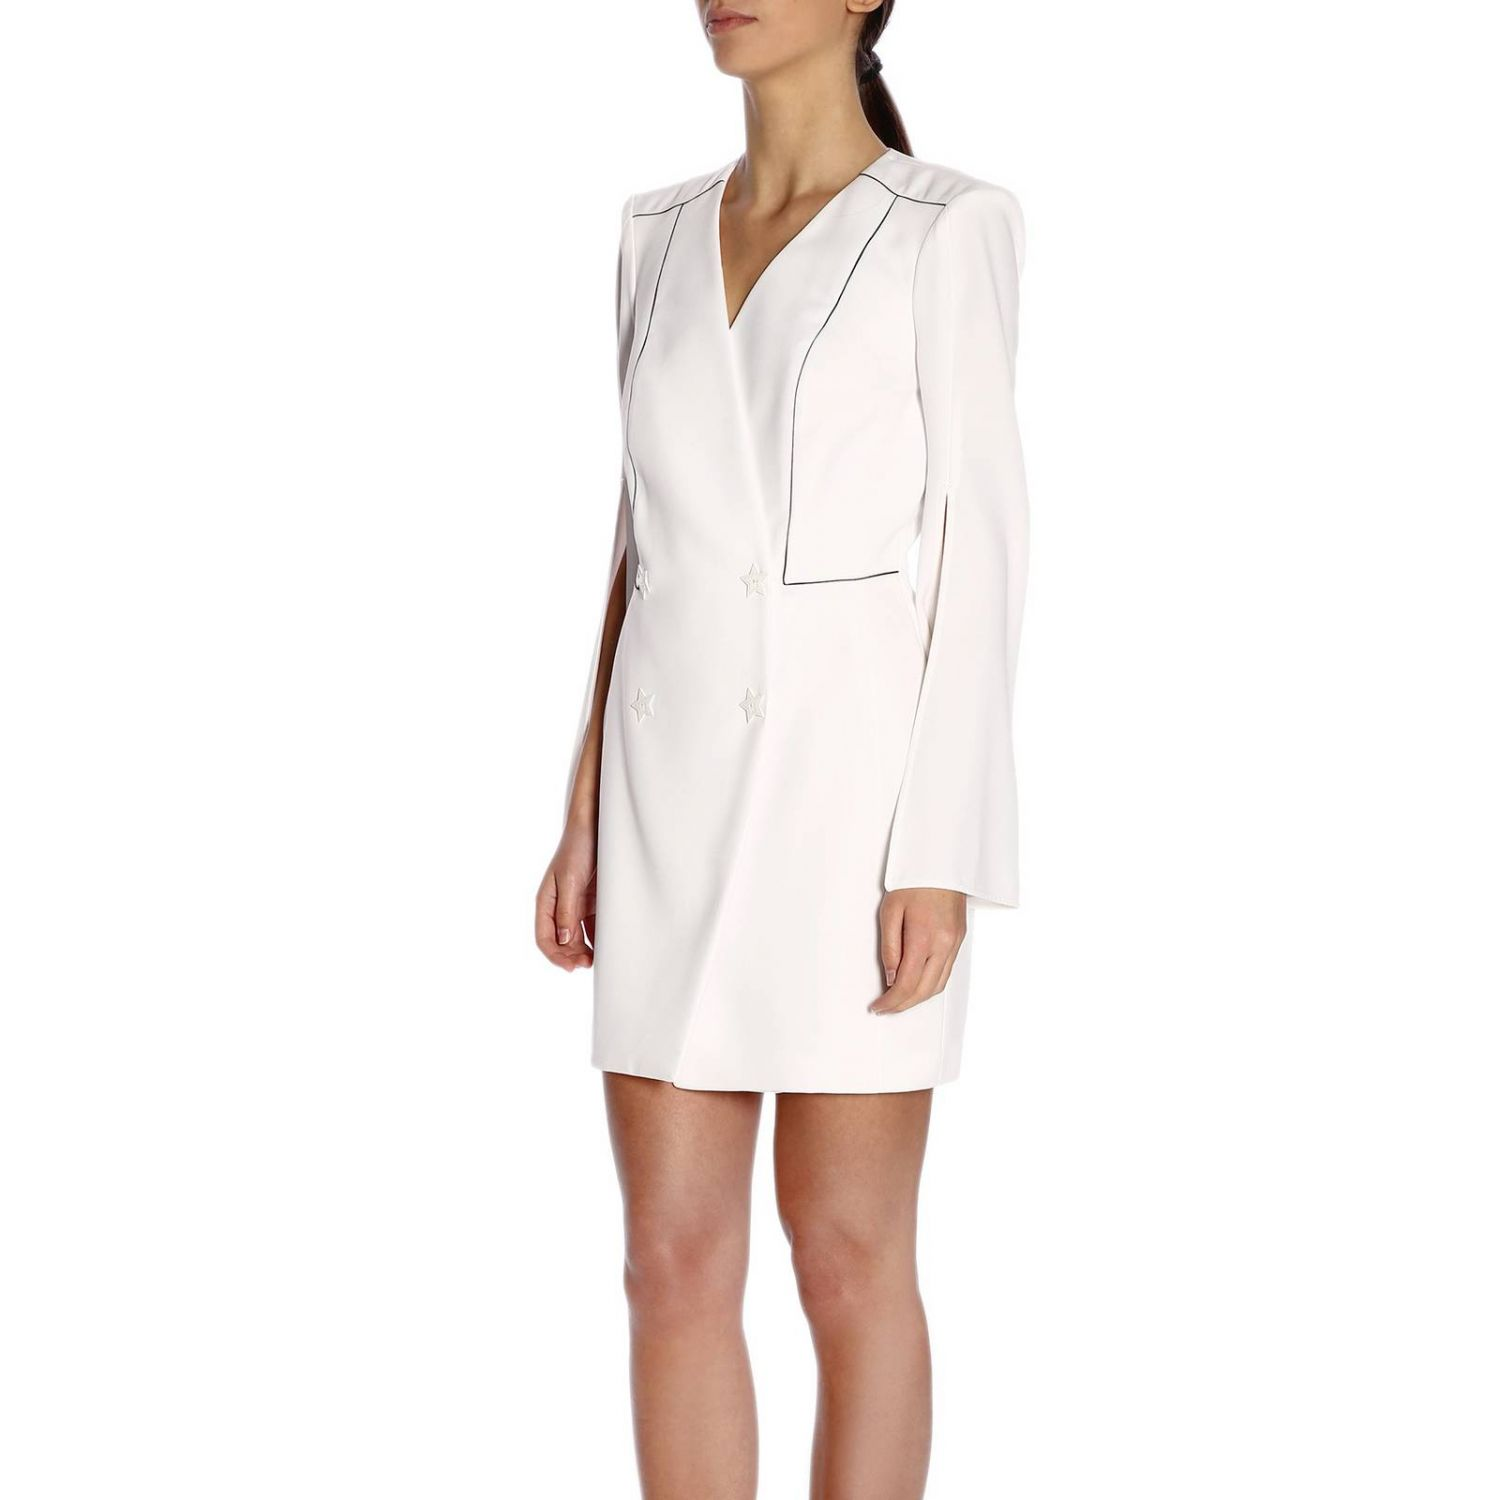 Dress women Elisabetta Franchi white 2